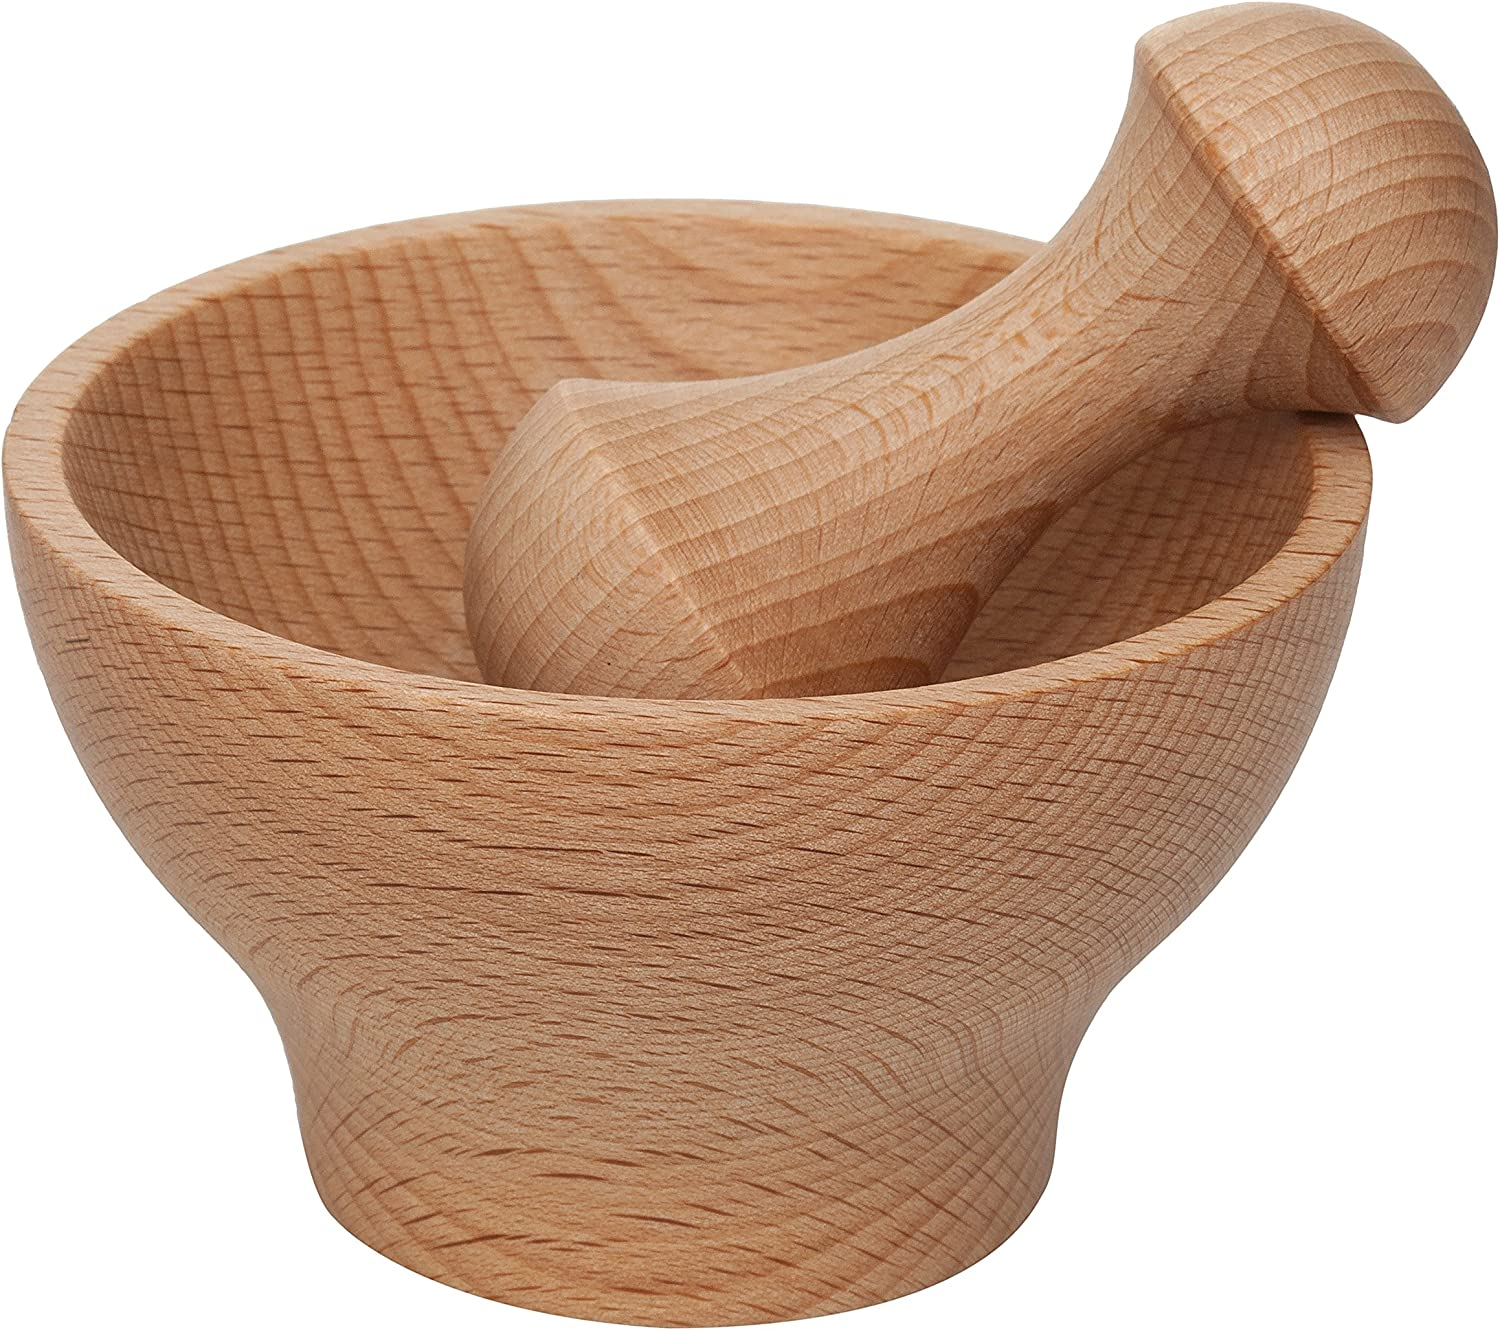 HIC Wooden Mortar Import and online shopping Pestle 4-Inch Set Includes 3. with